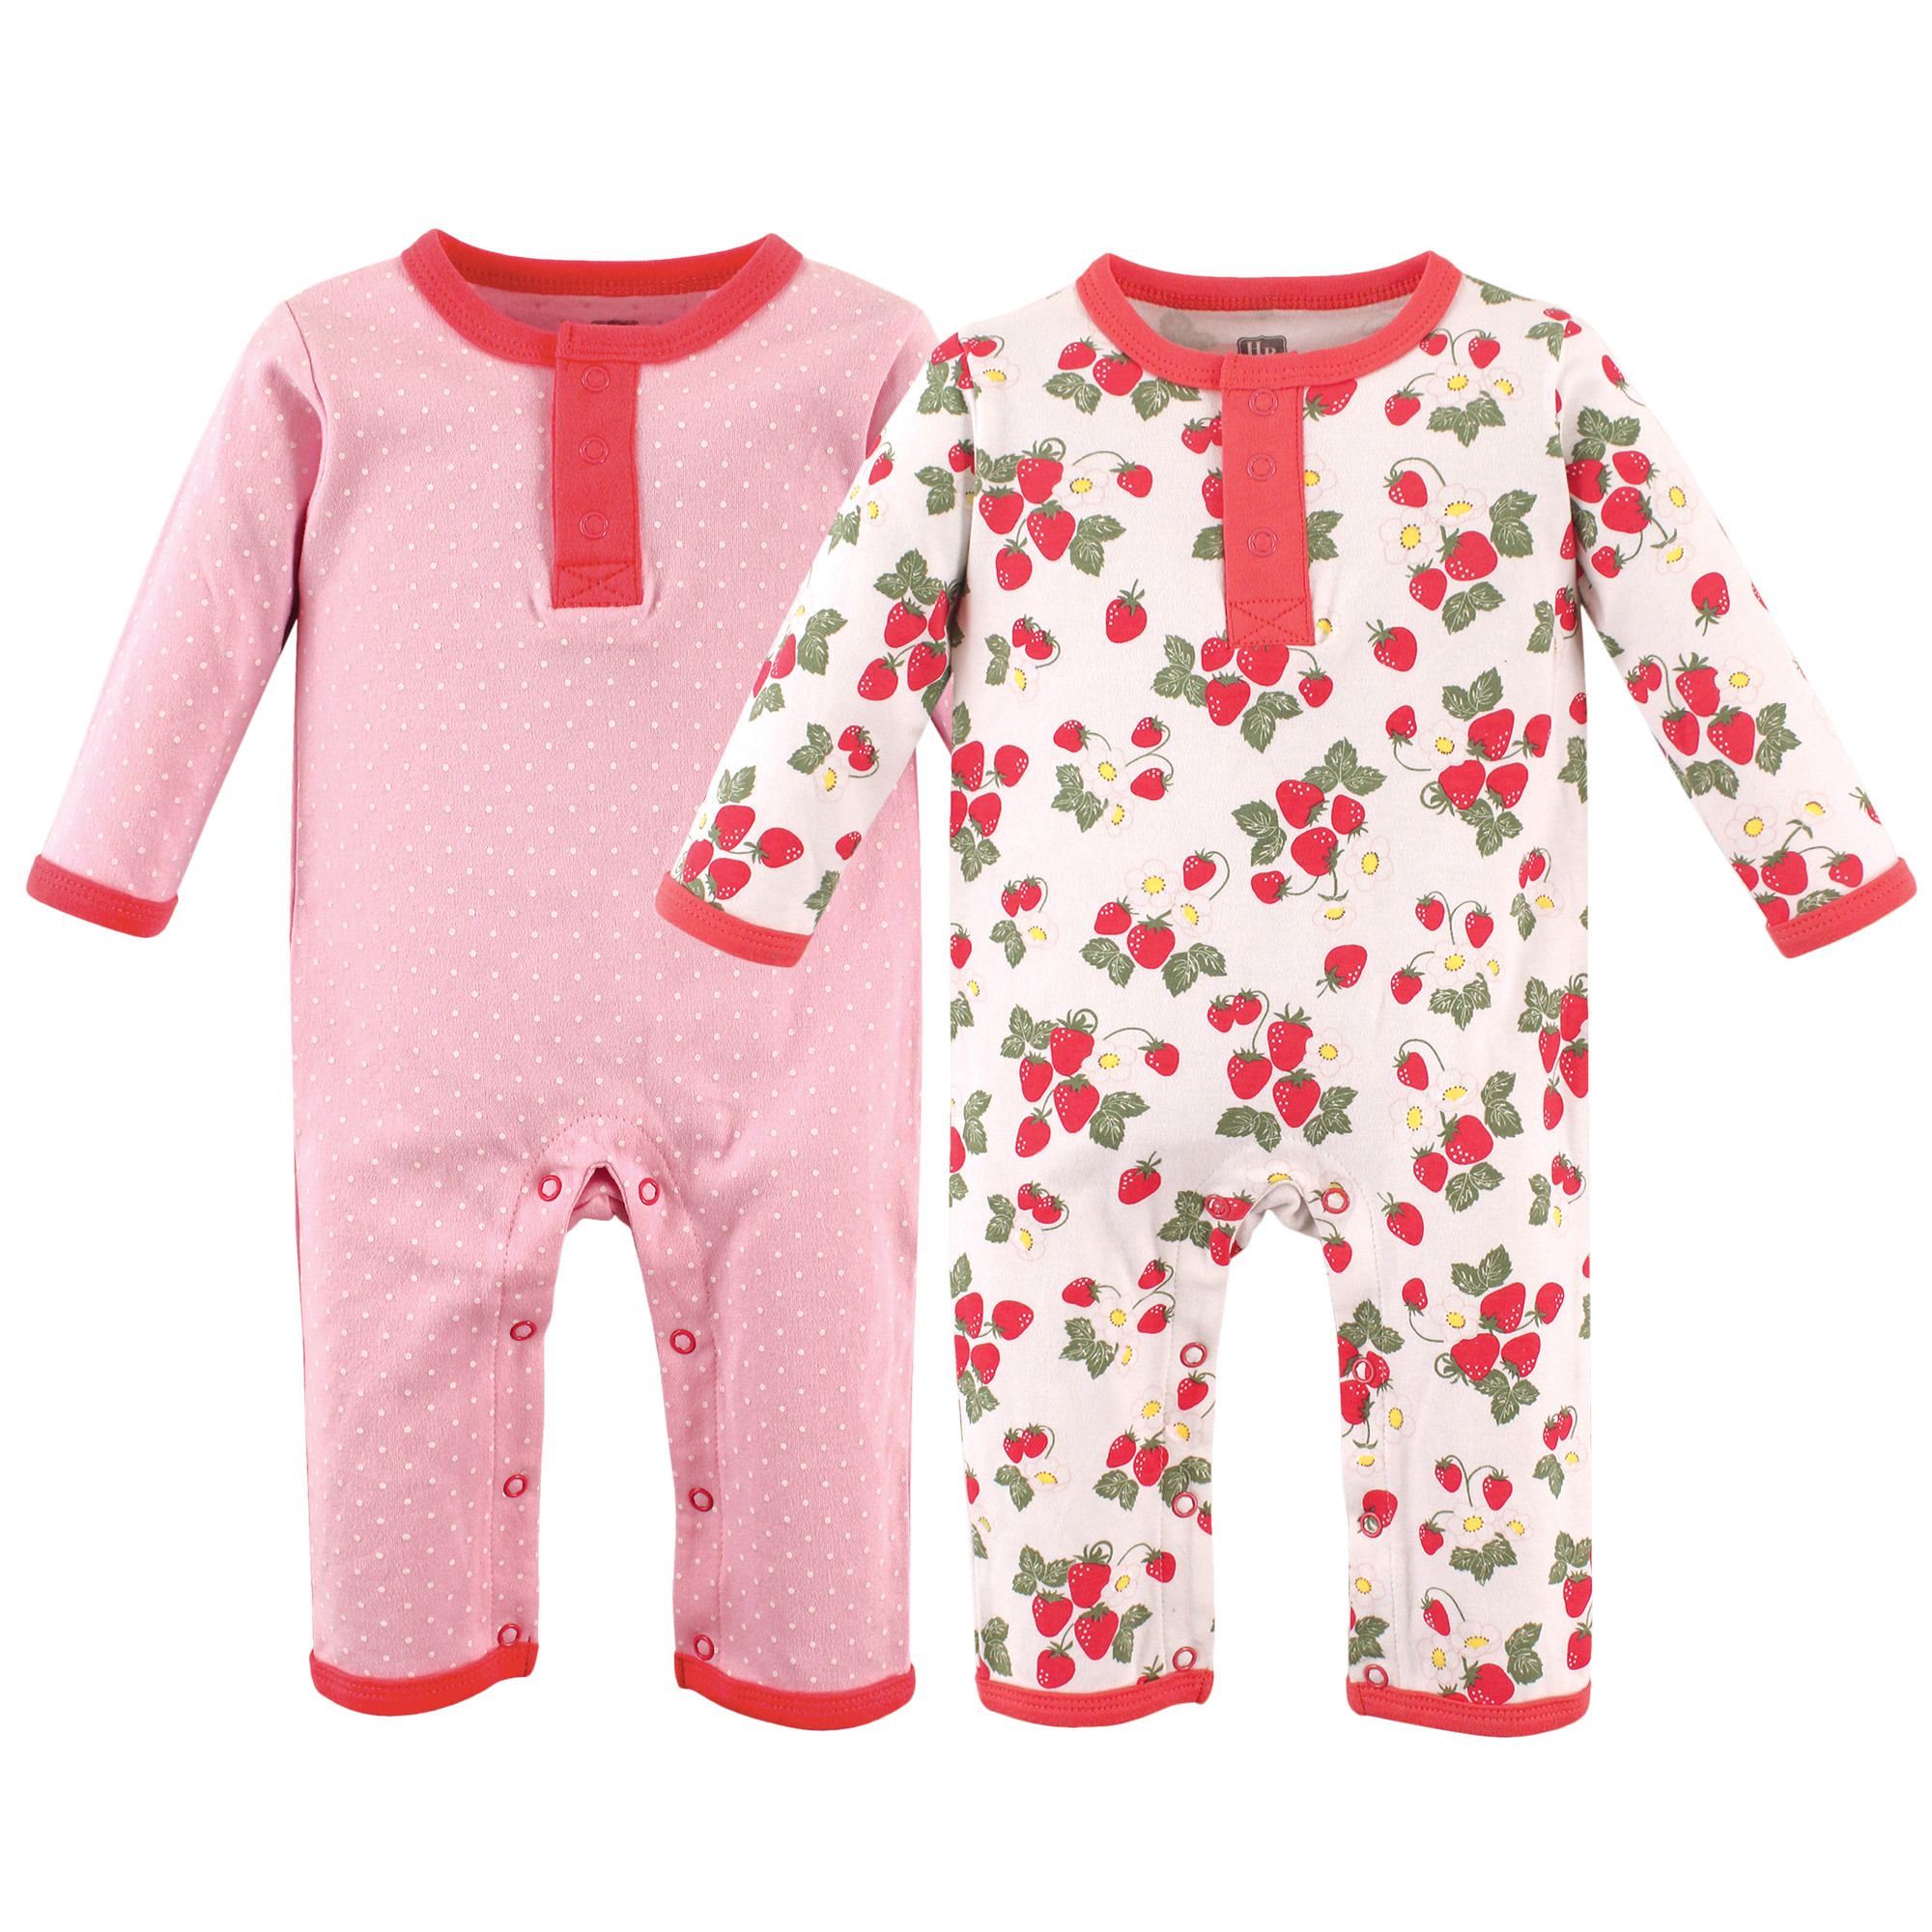 b560126db BabyVision | Clothing | Union suits | Affordable Infant Clothing